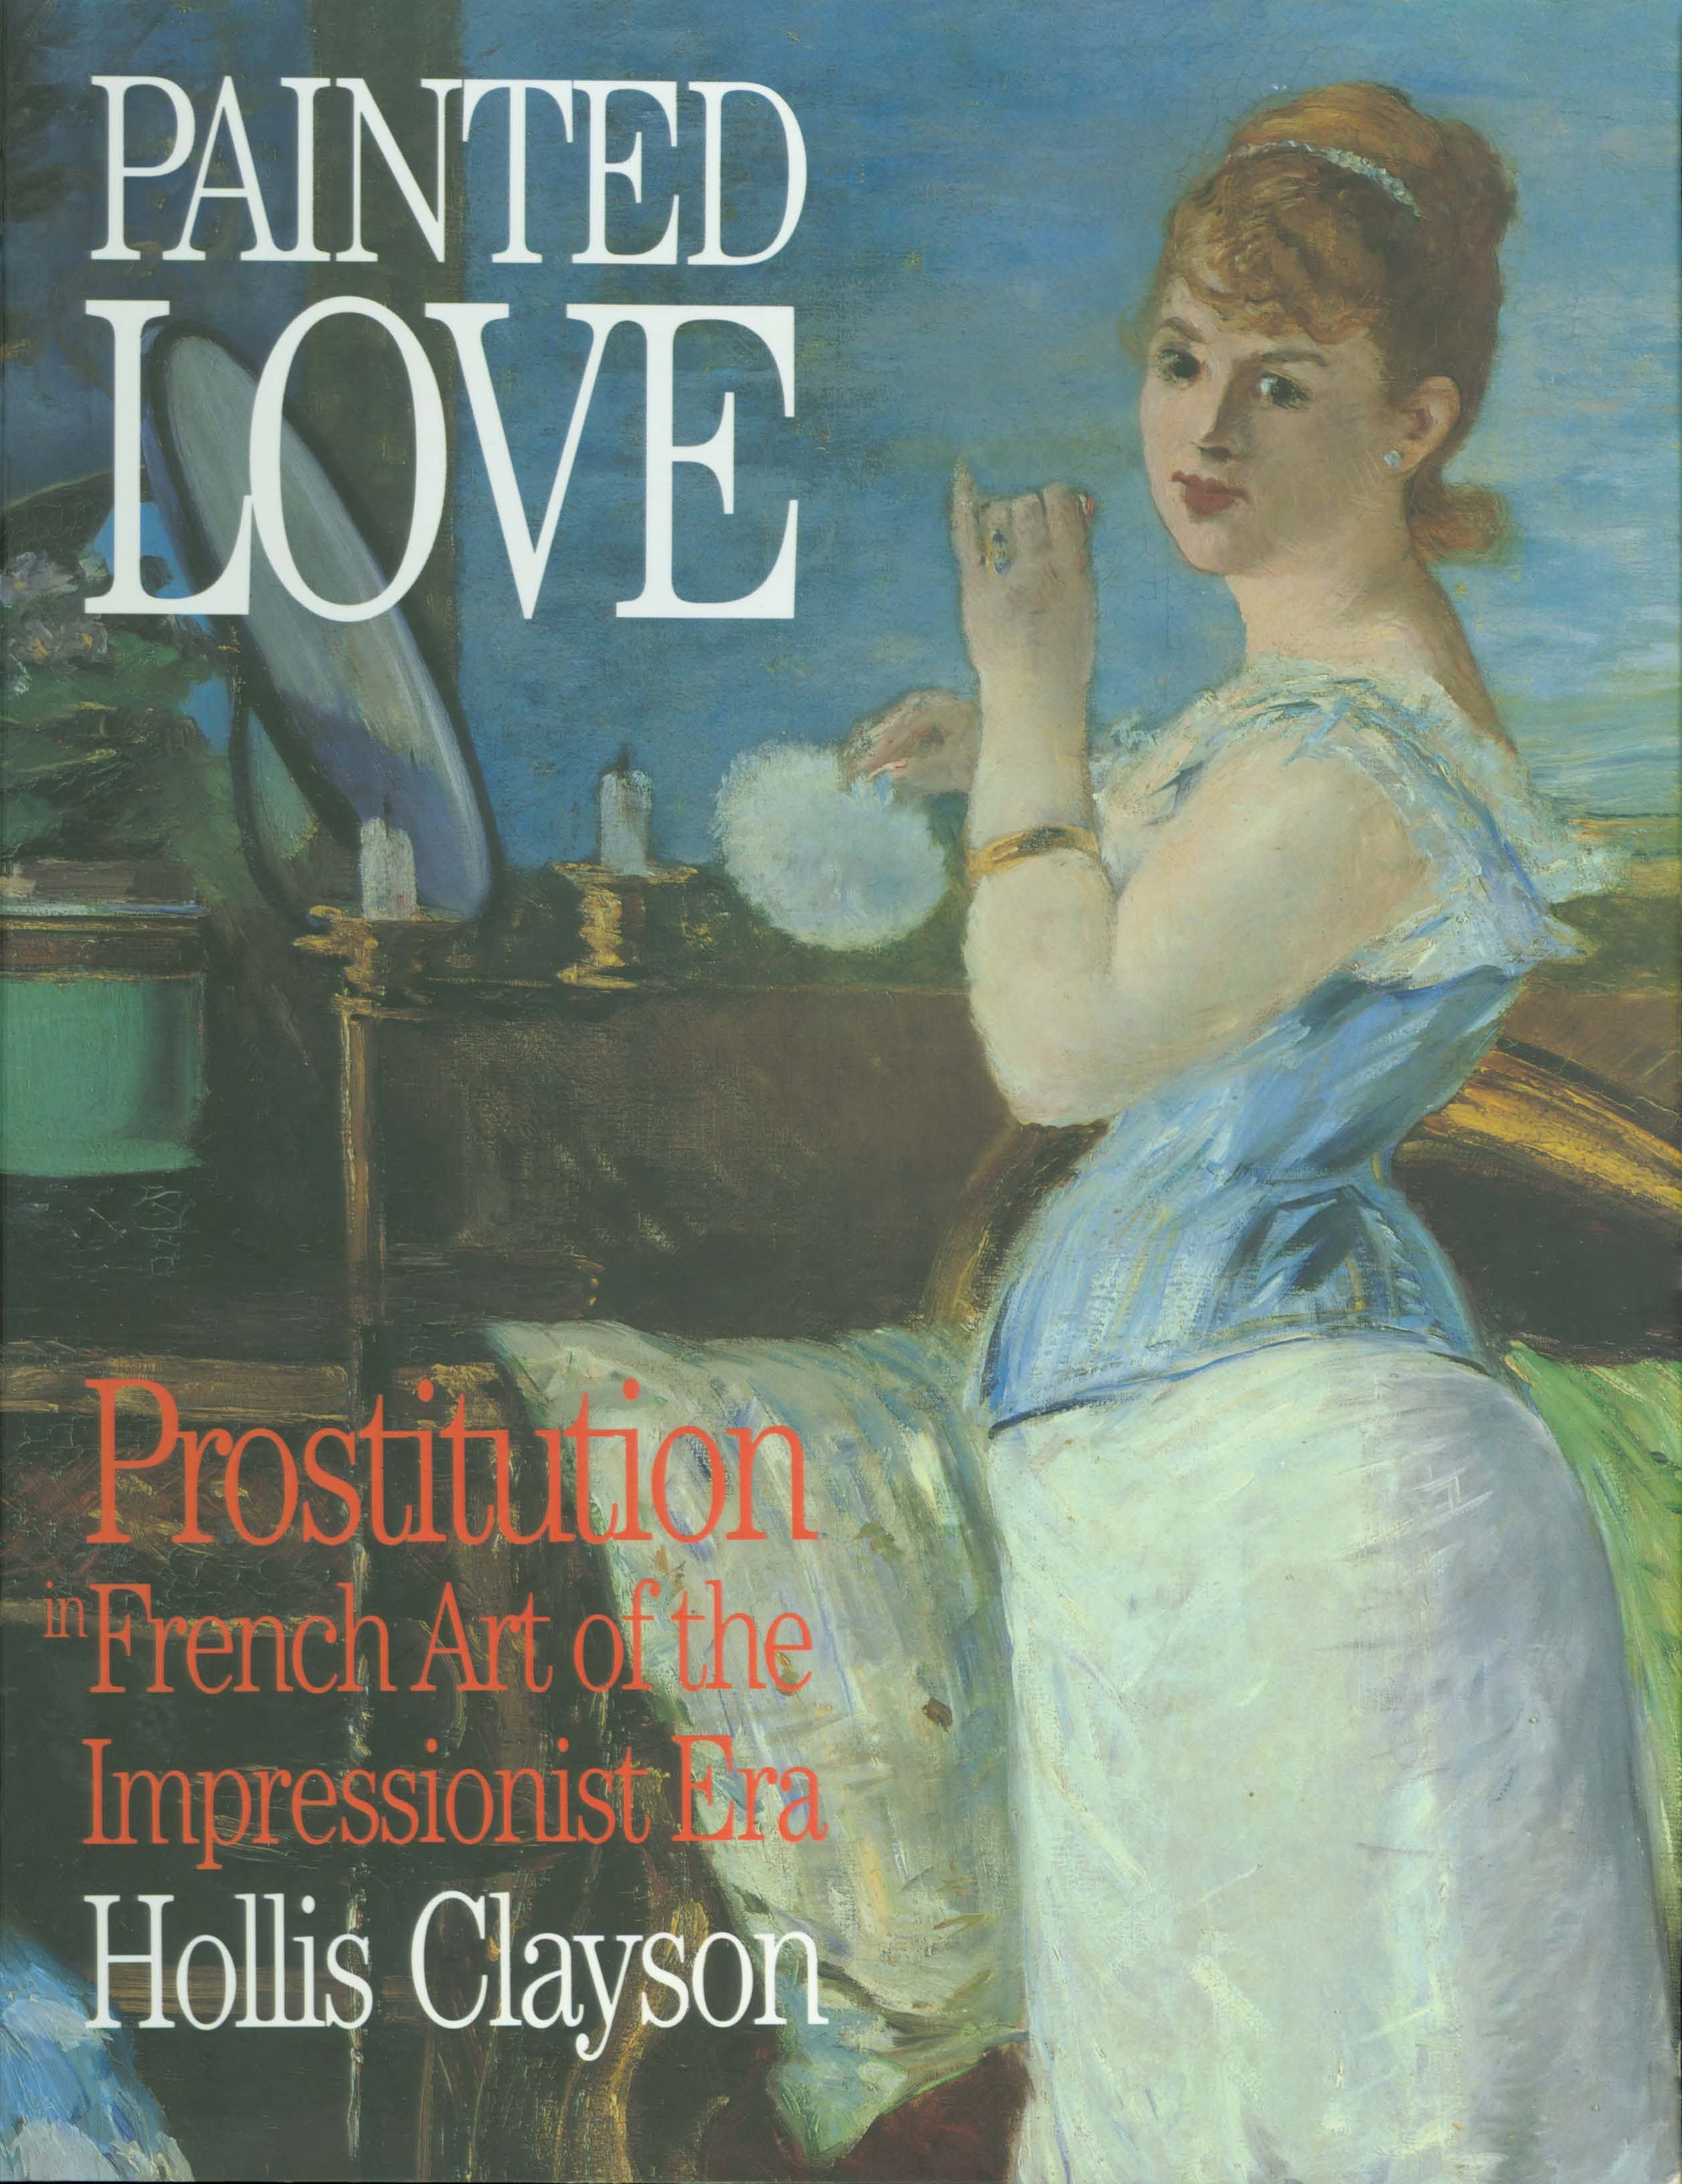 Painted Love: Prostitution in French Art of the Impressionist Era  Hollis Clayson  2003